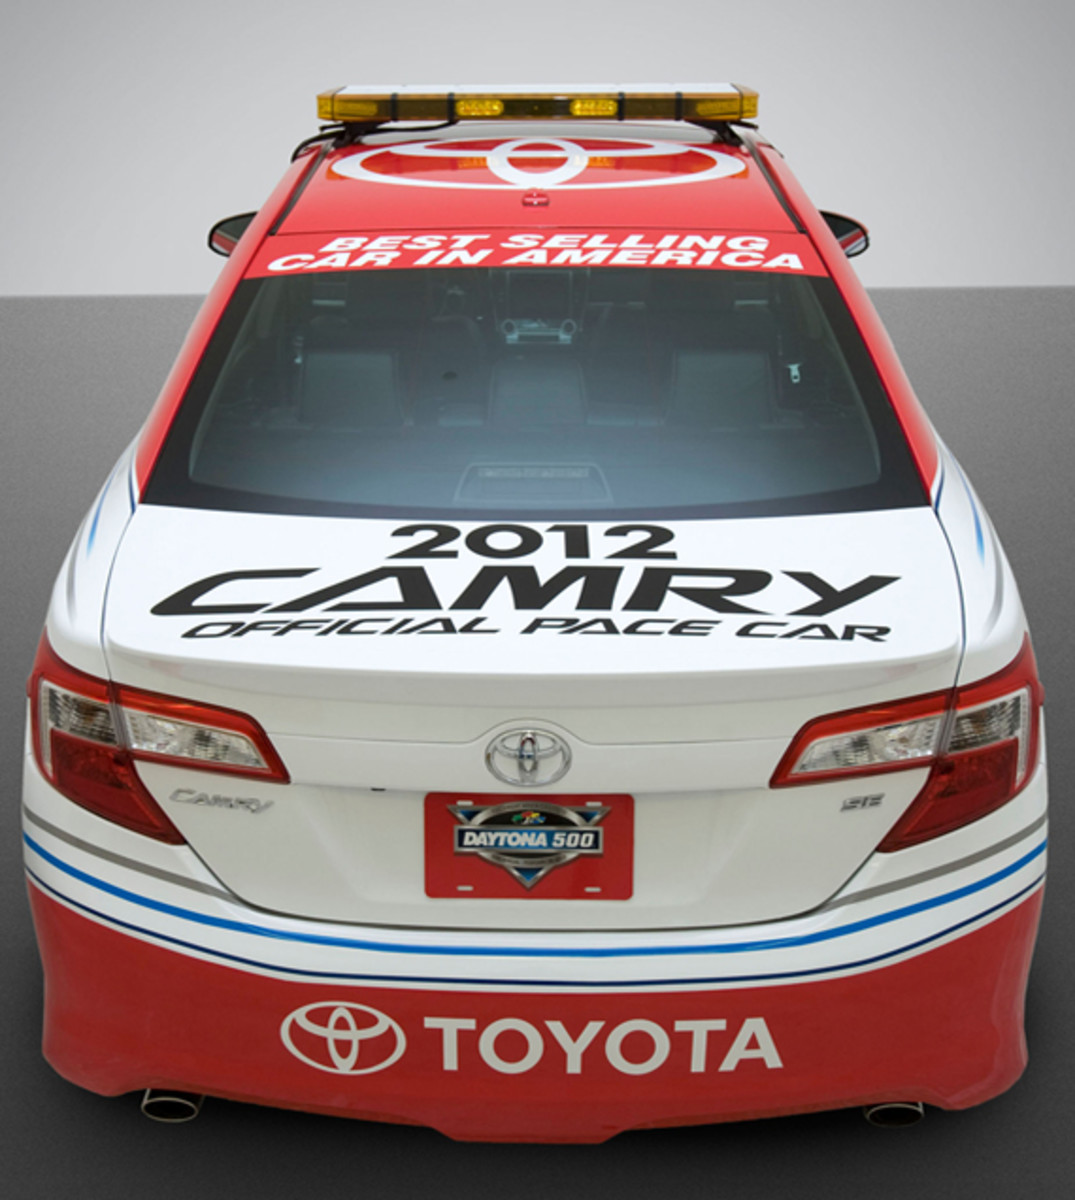 toyota the new camry 2012 daytona 500 pace car. Black Bedroom Furniture Sets. Home Design Ideas